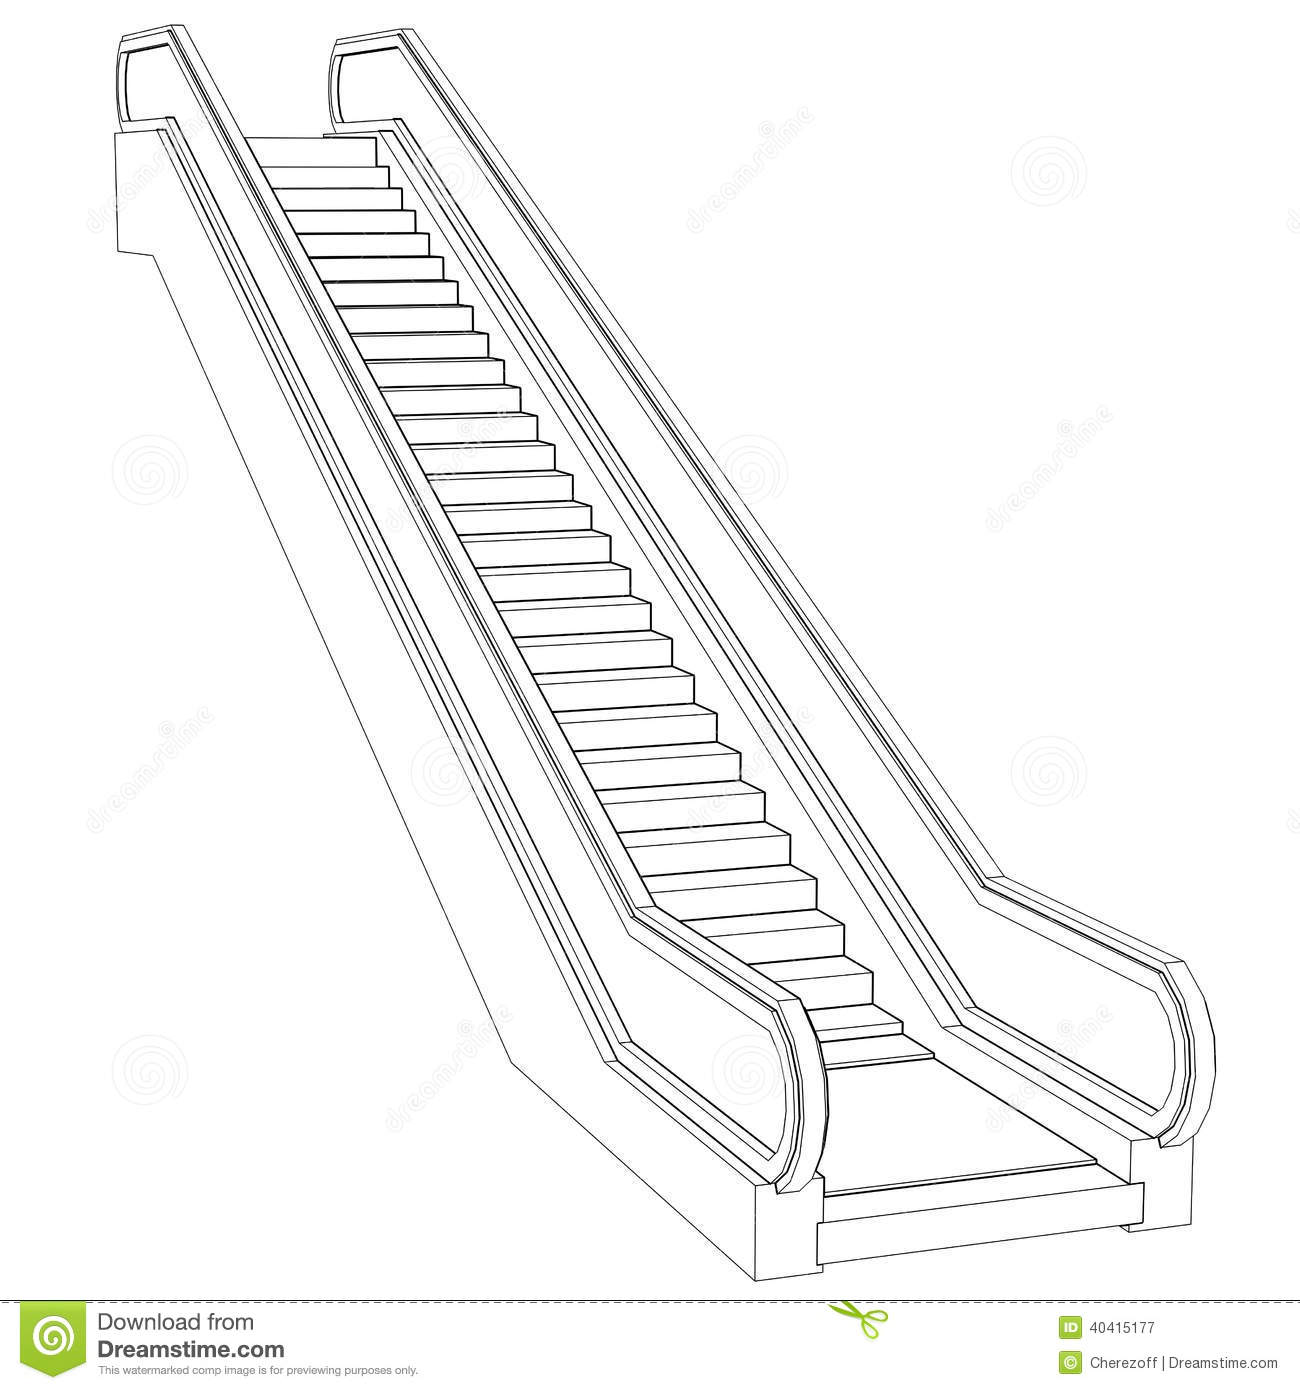 Escalator clipart black and white 9 » Clipart Station